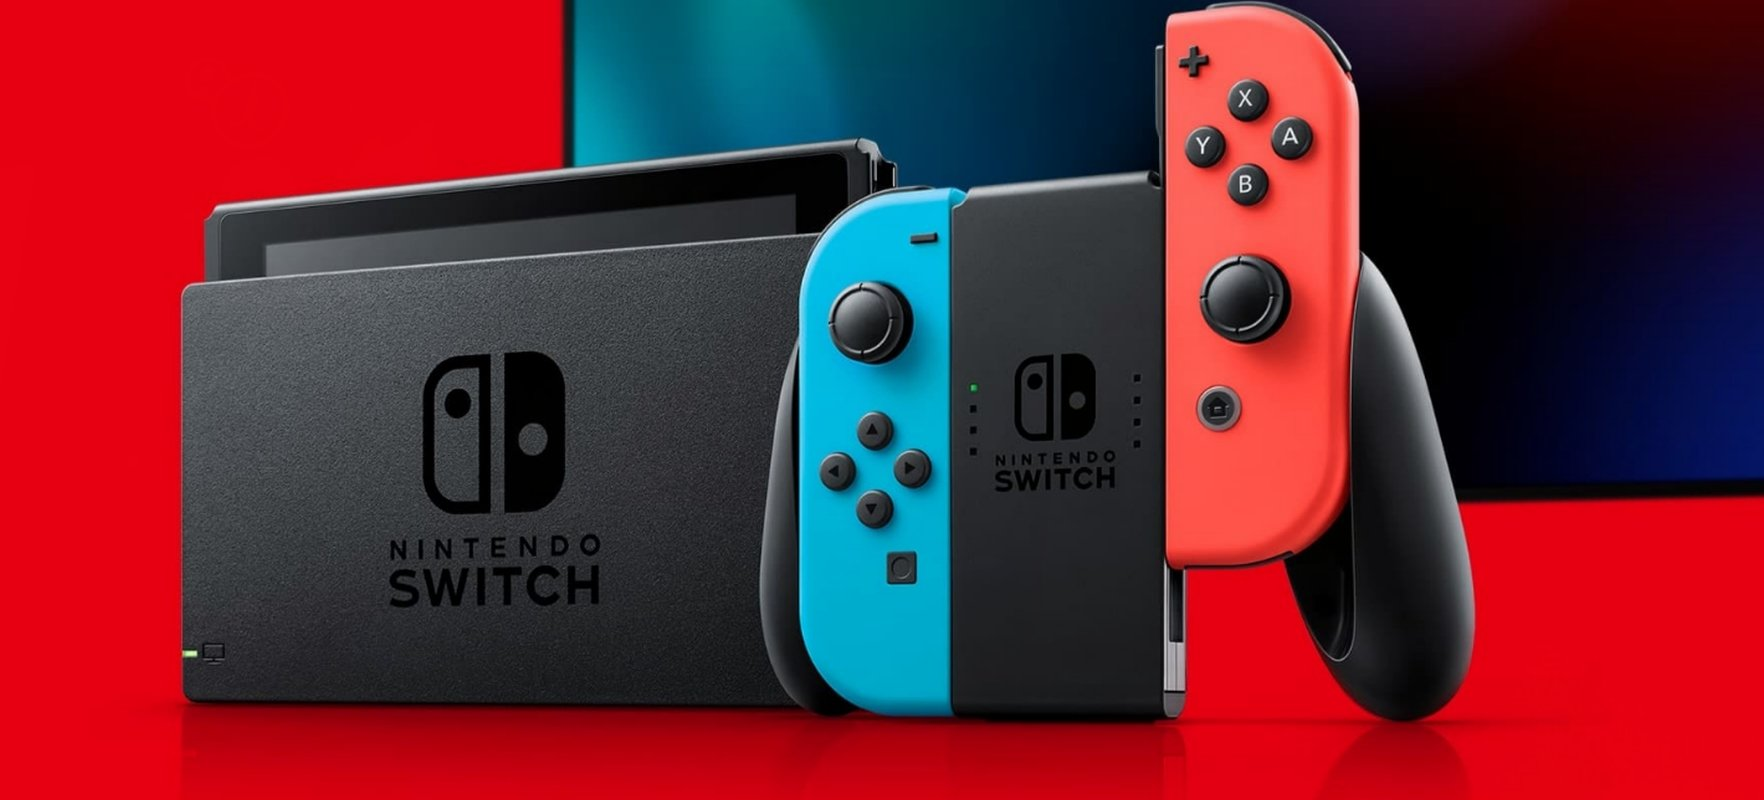 Nintendo Switch Sets A New Record As The Best-Selling Console In The United States For 22 Consecutive Months